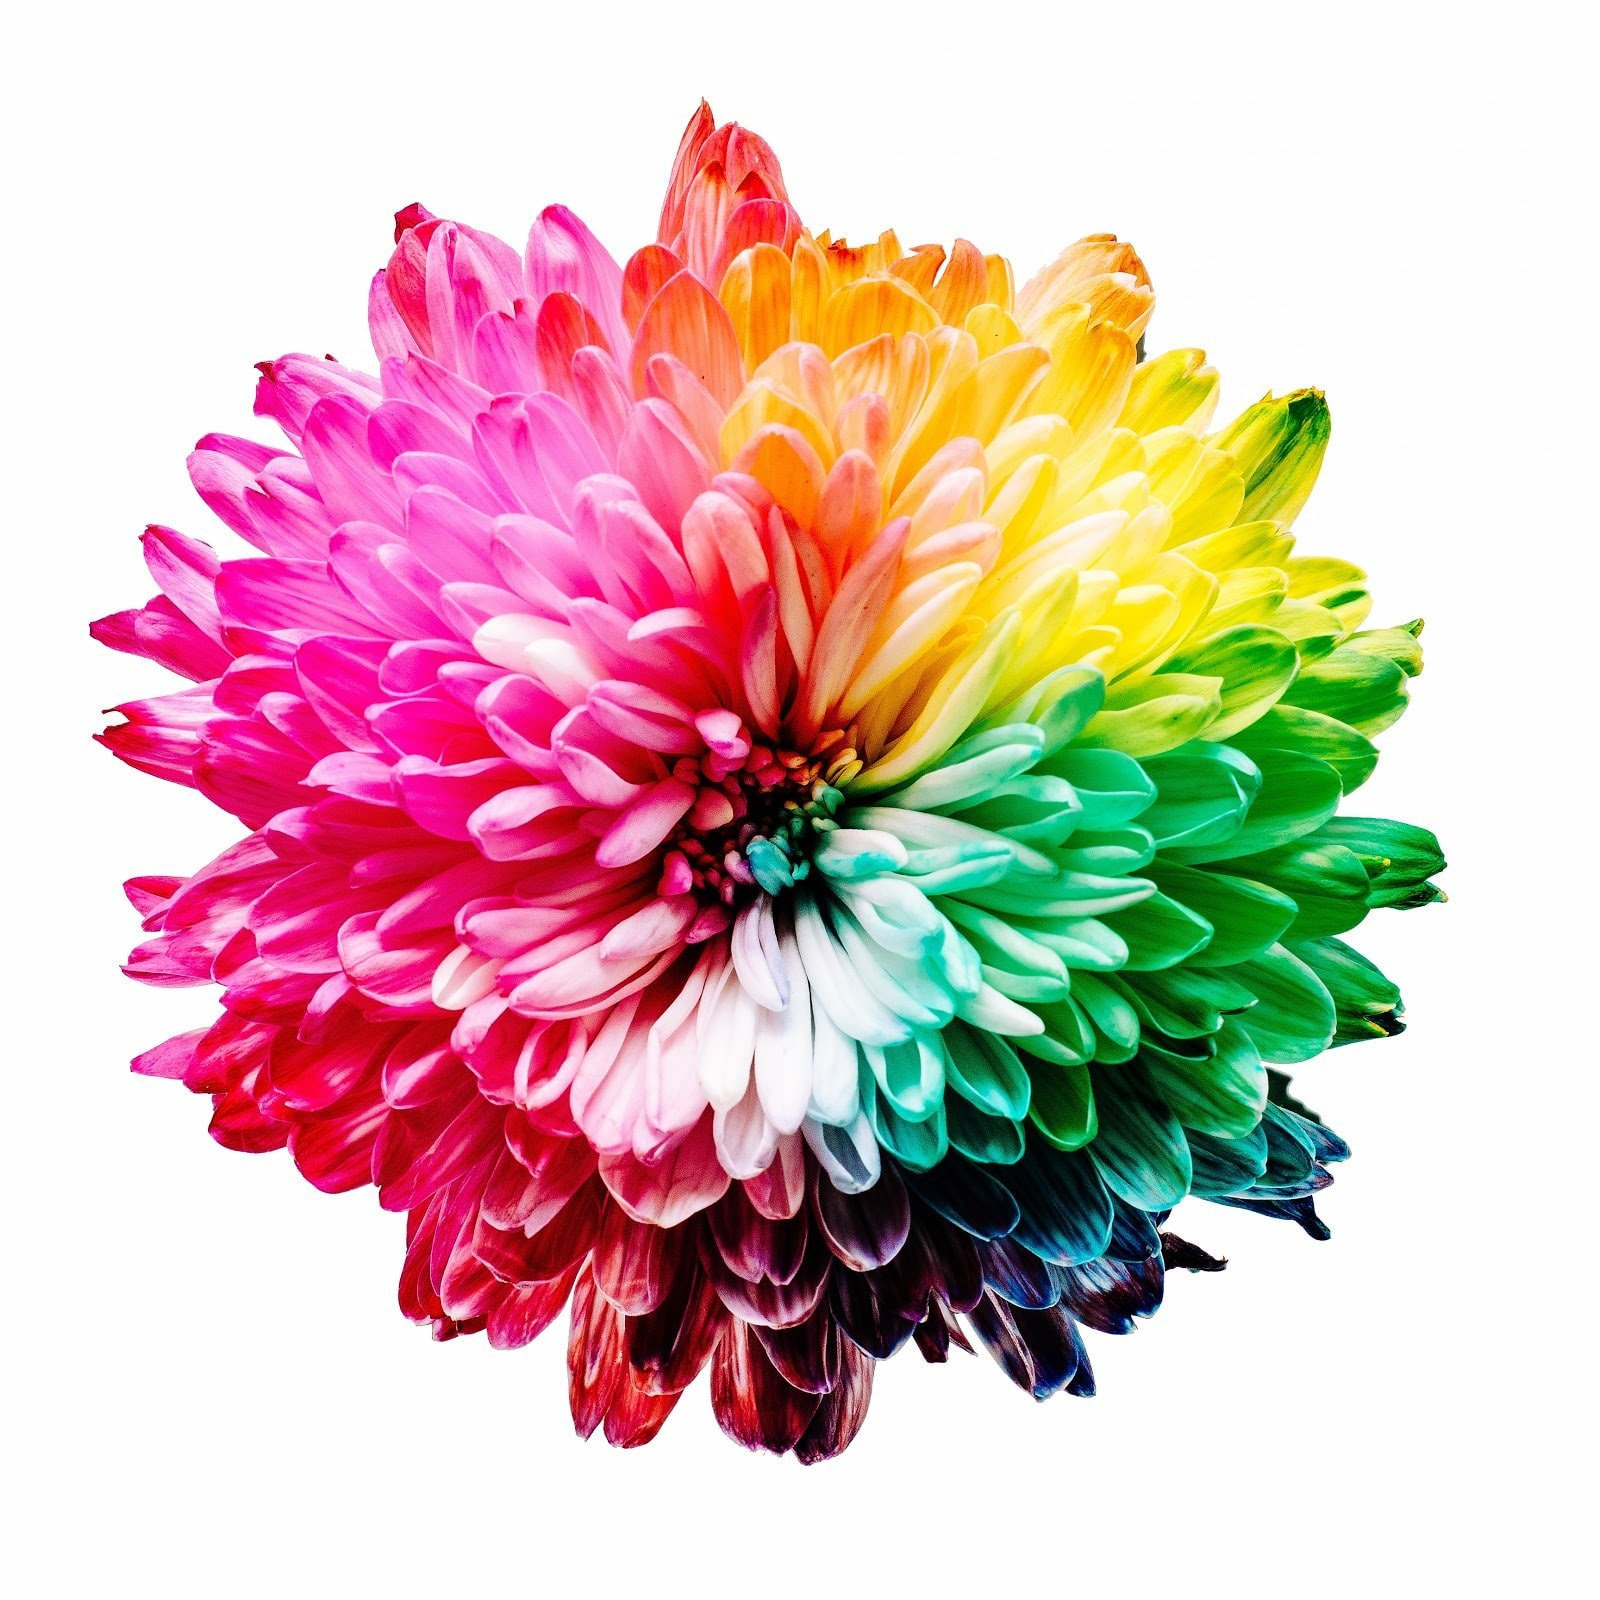 Flower dyed in rainbow colors by Sharon Pittaway